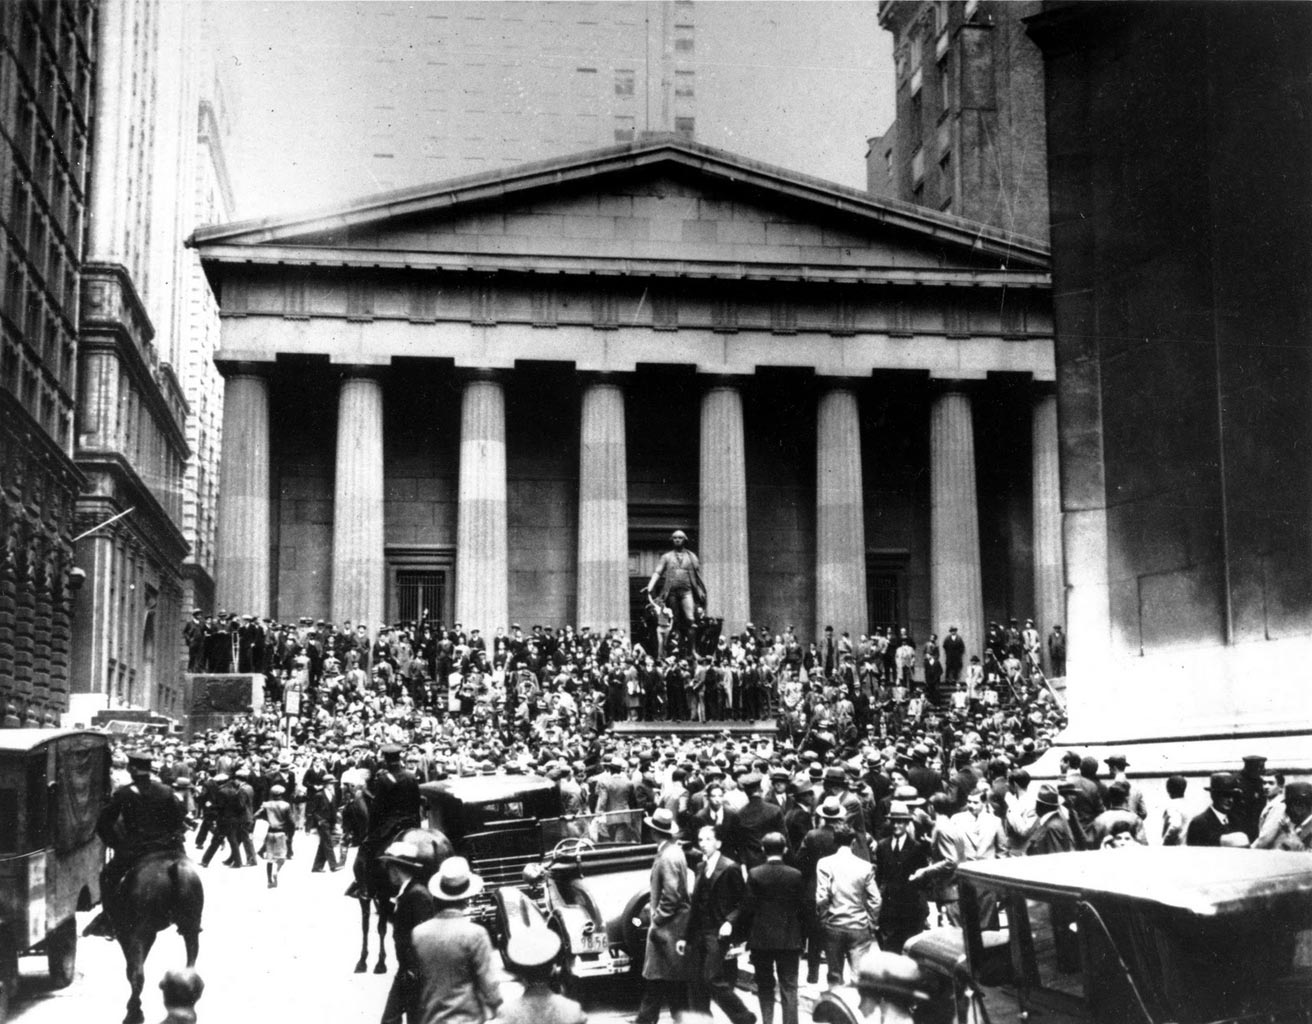 an overview of the stock market crash of 1929s in united states United states -- wall street crash the wall street crash of 1929, is the stock- market crash that occurred starts on october 28th and started the period of the.